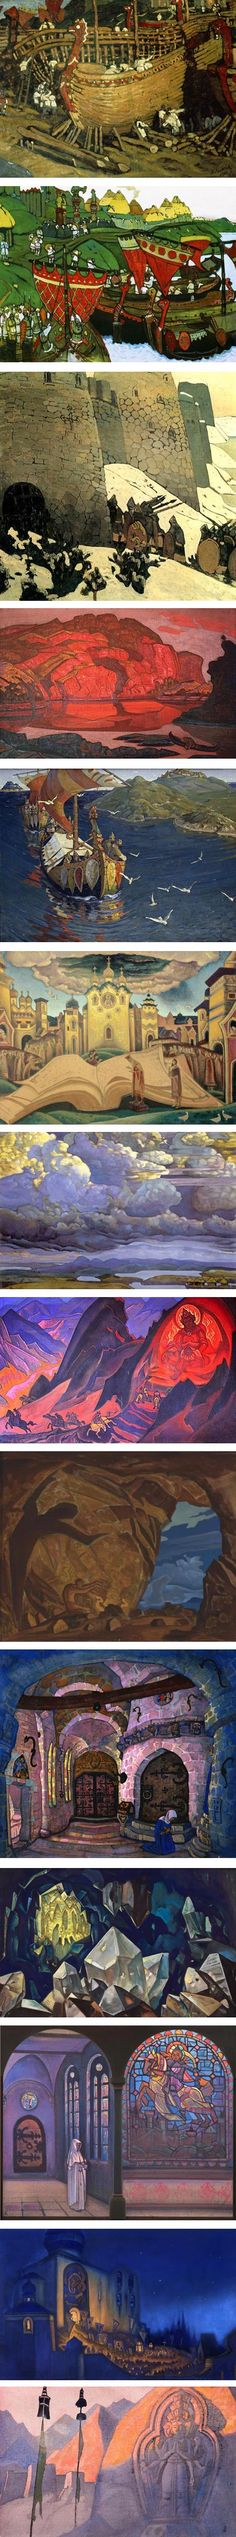 http://www.linesandcolors.com/images/2012-12/roerich_450.jpg